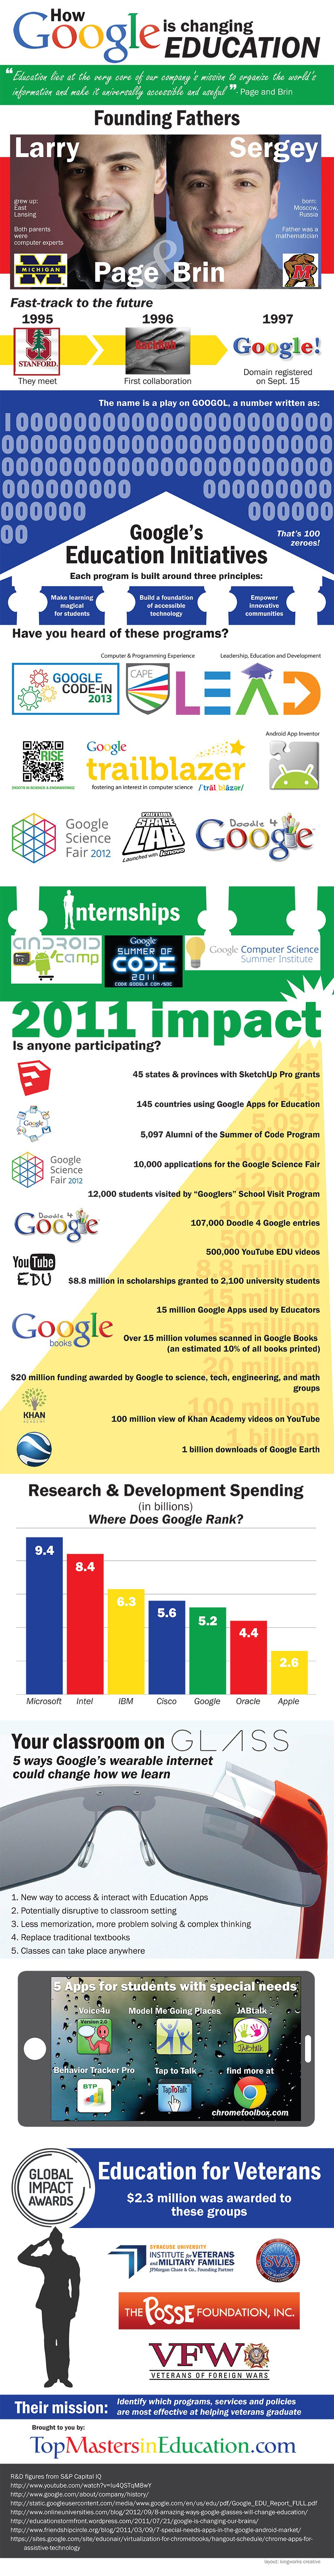 google_education_900